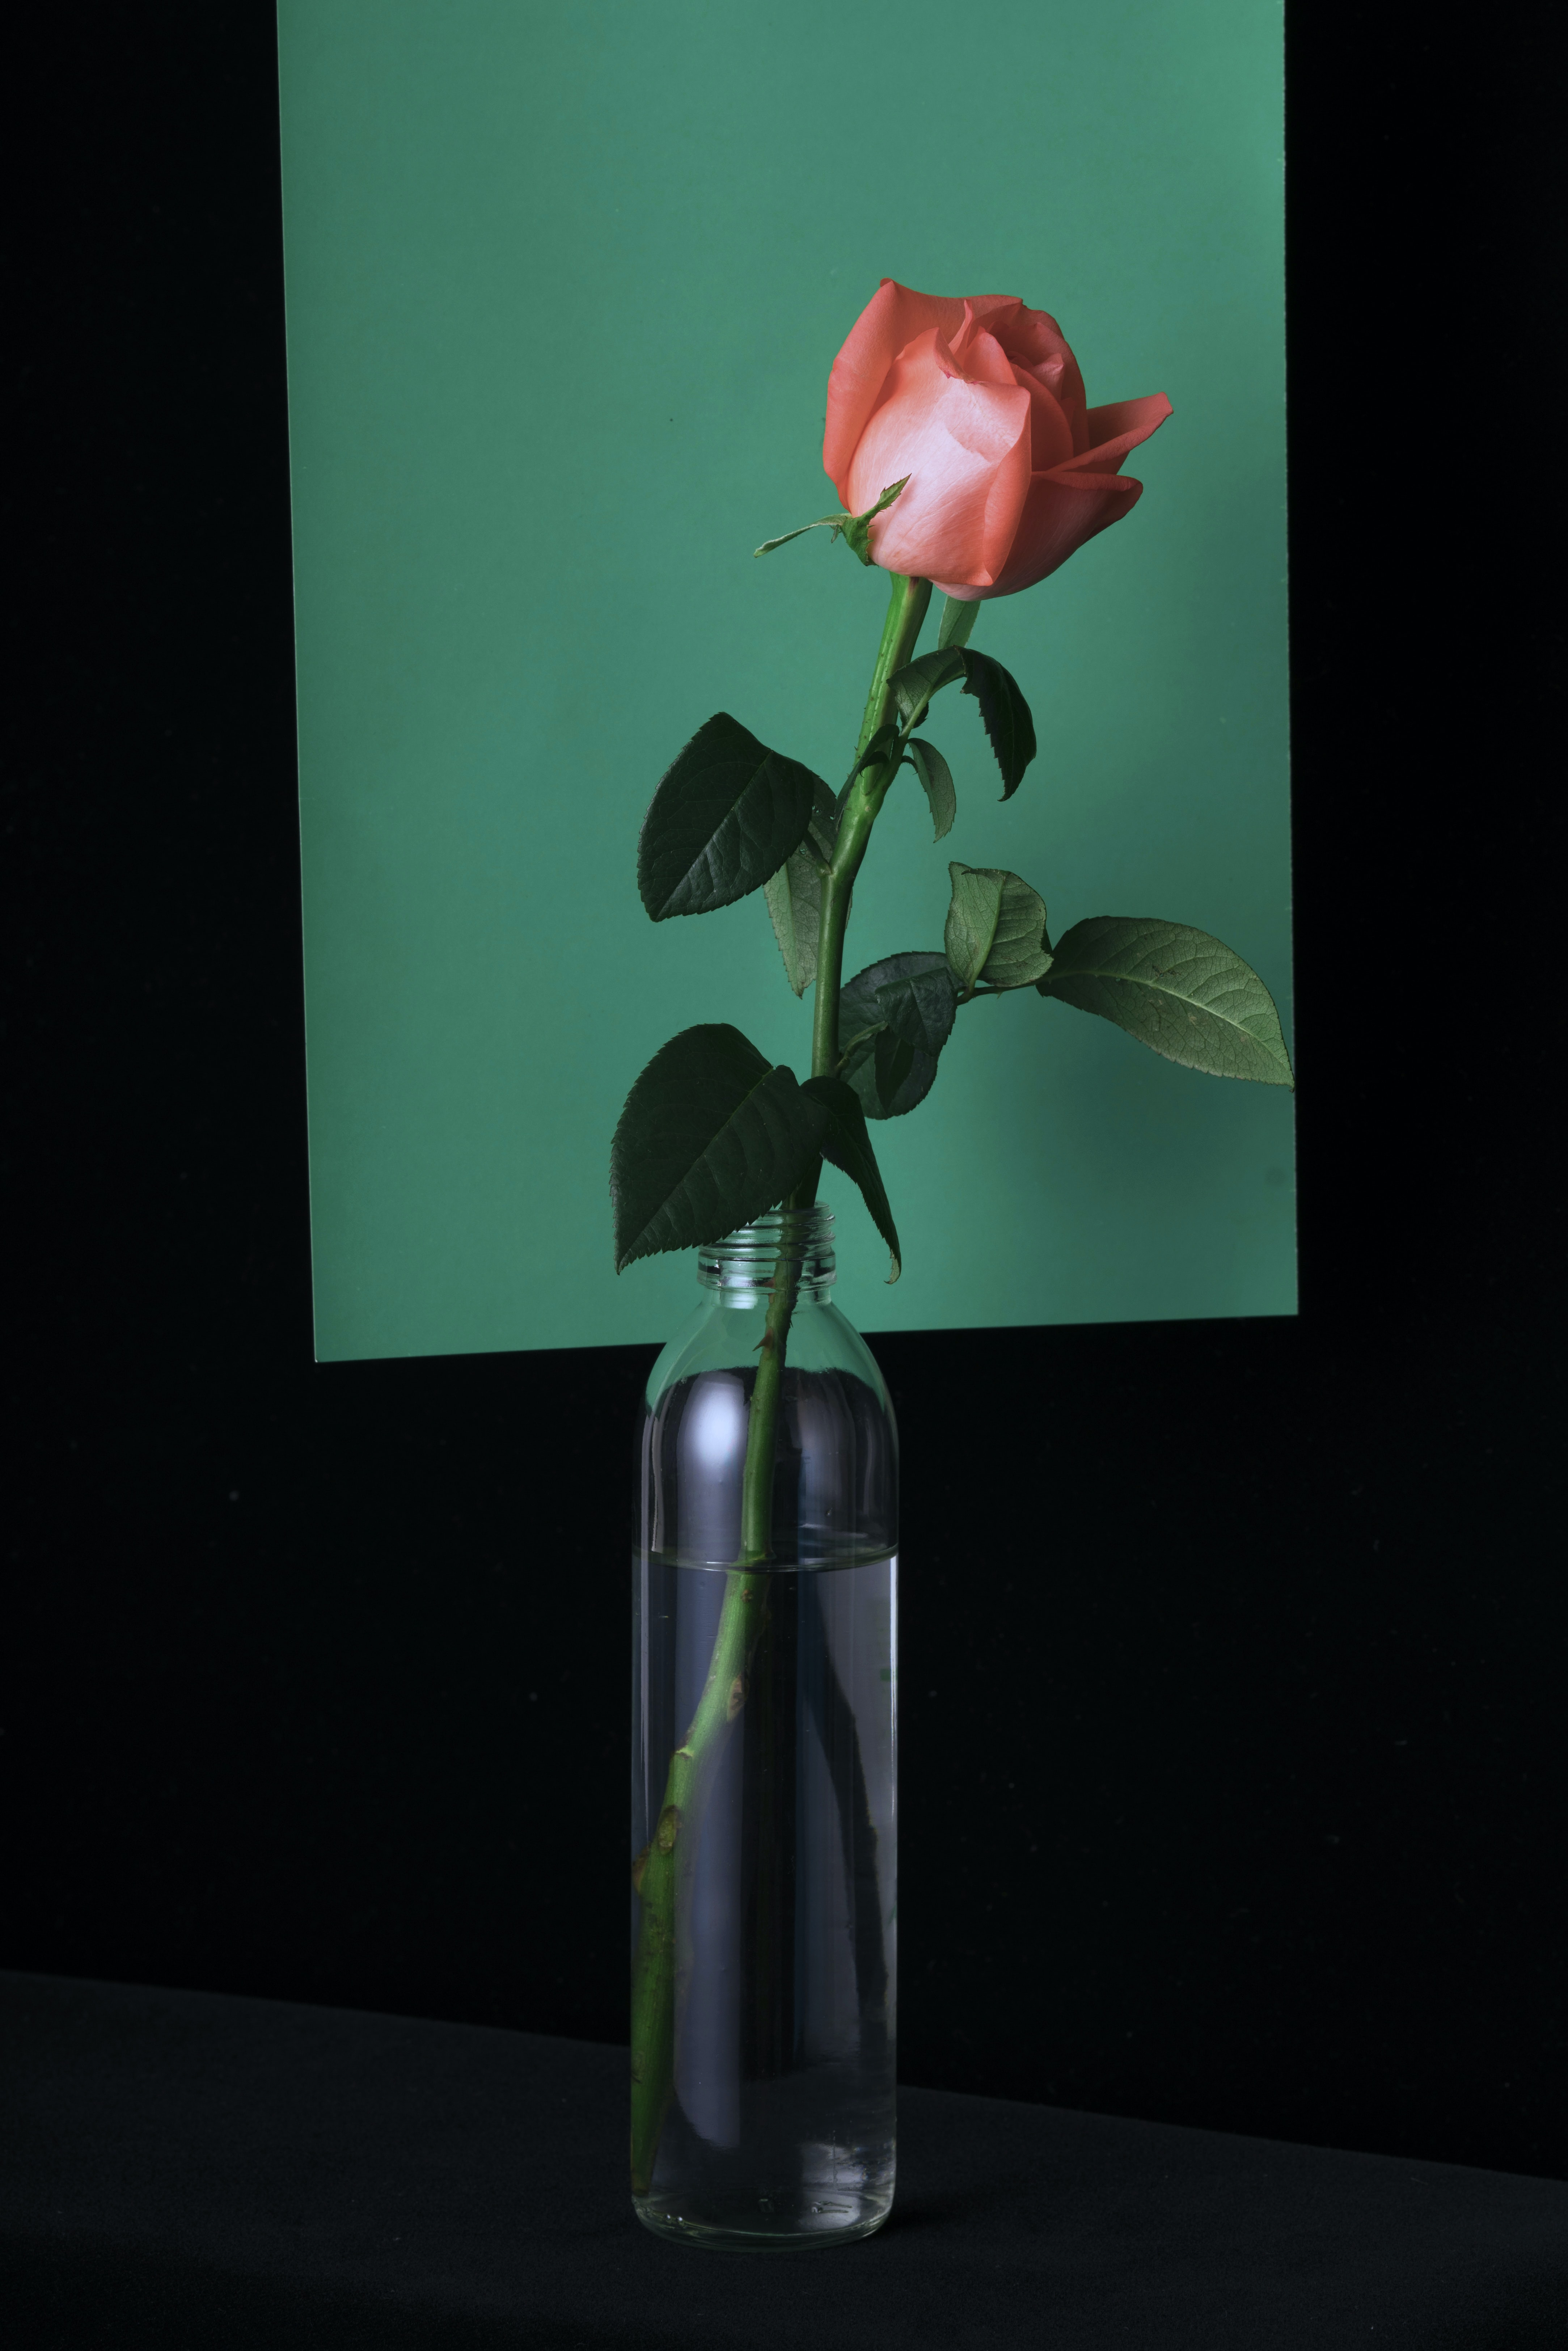 pink rose in clear glass vase